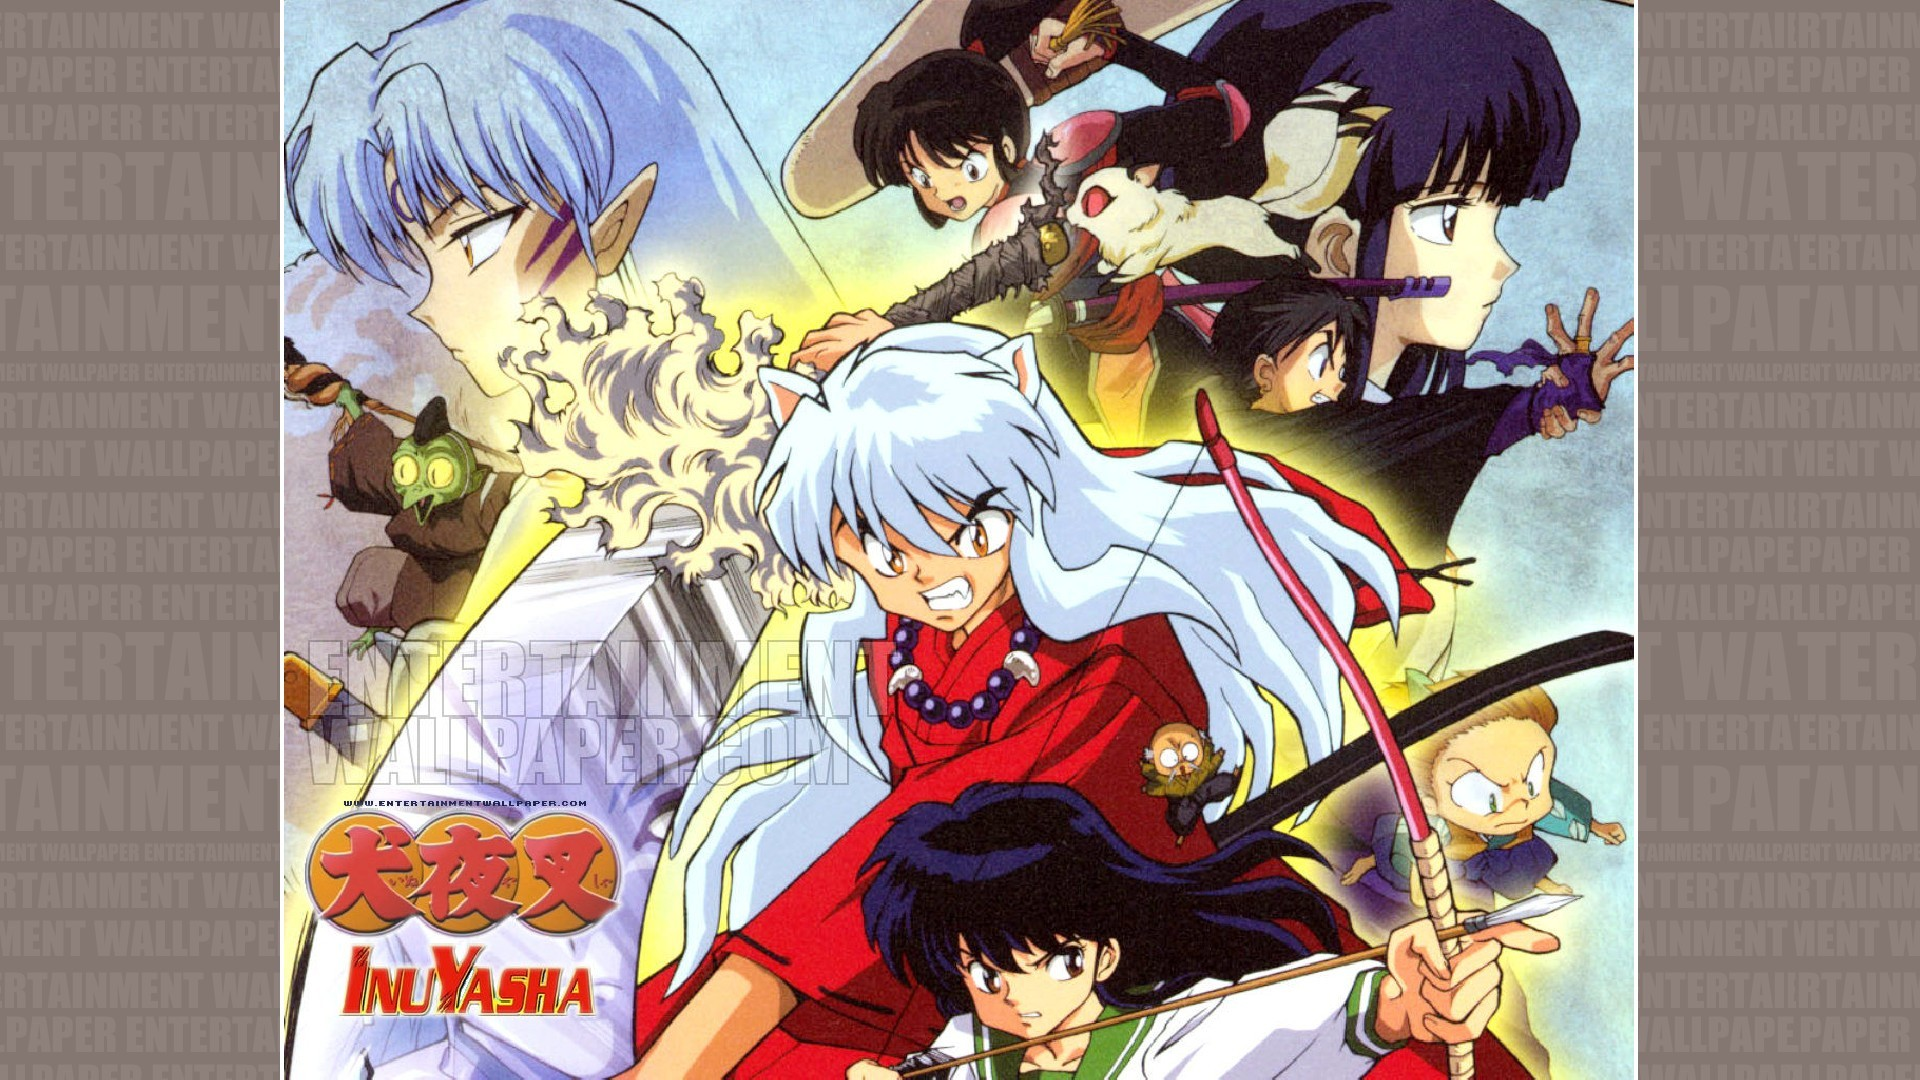 1920x1080 inuyasha wallpaper